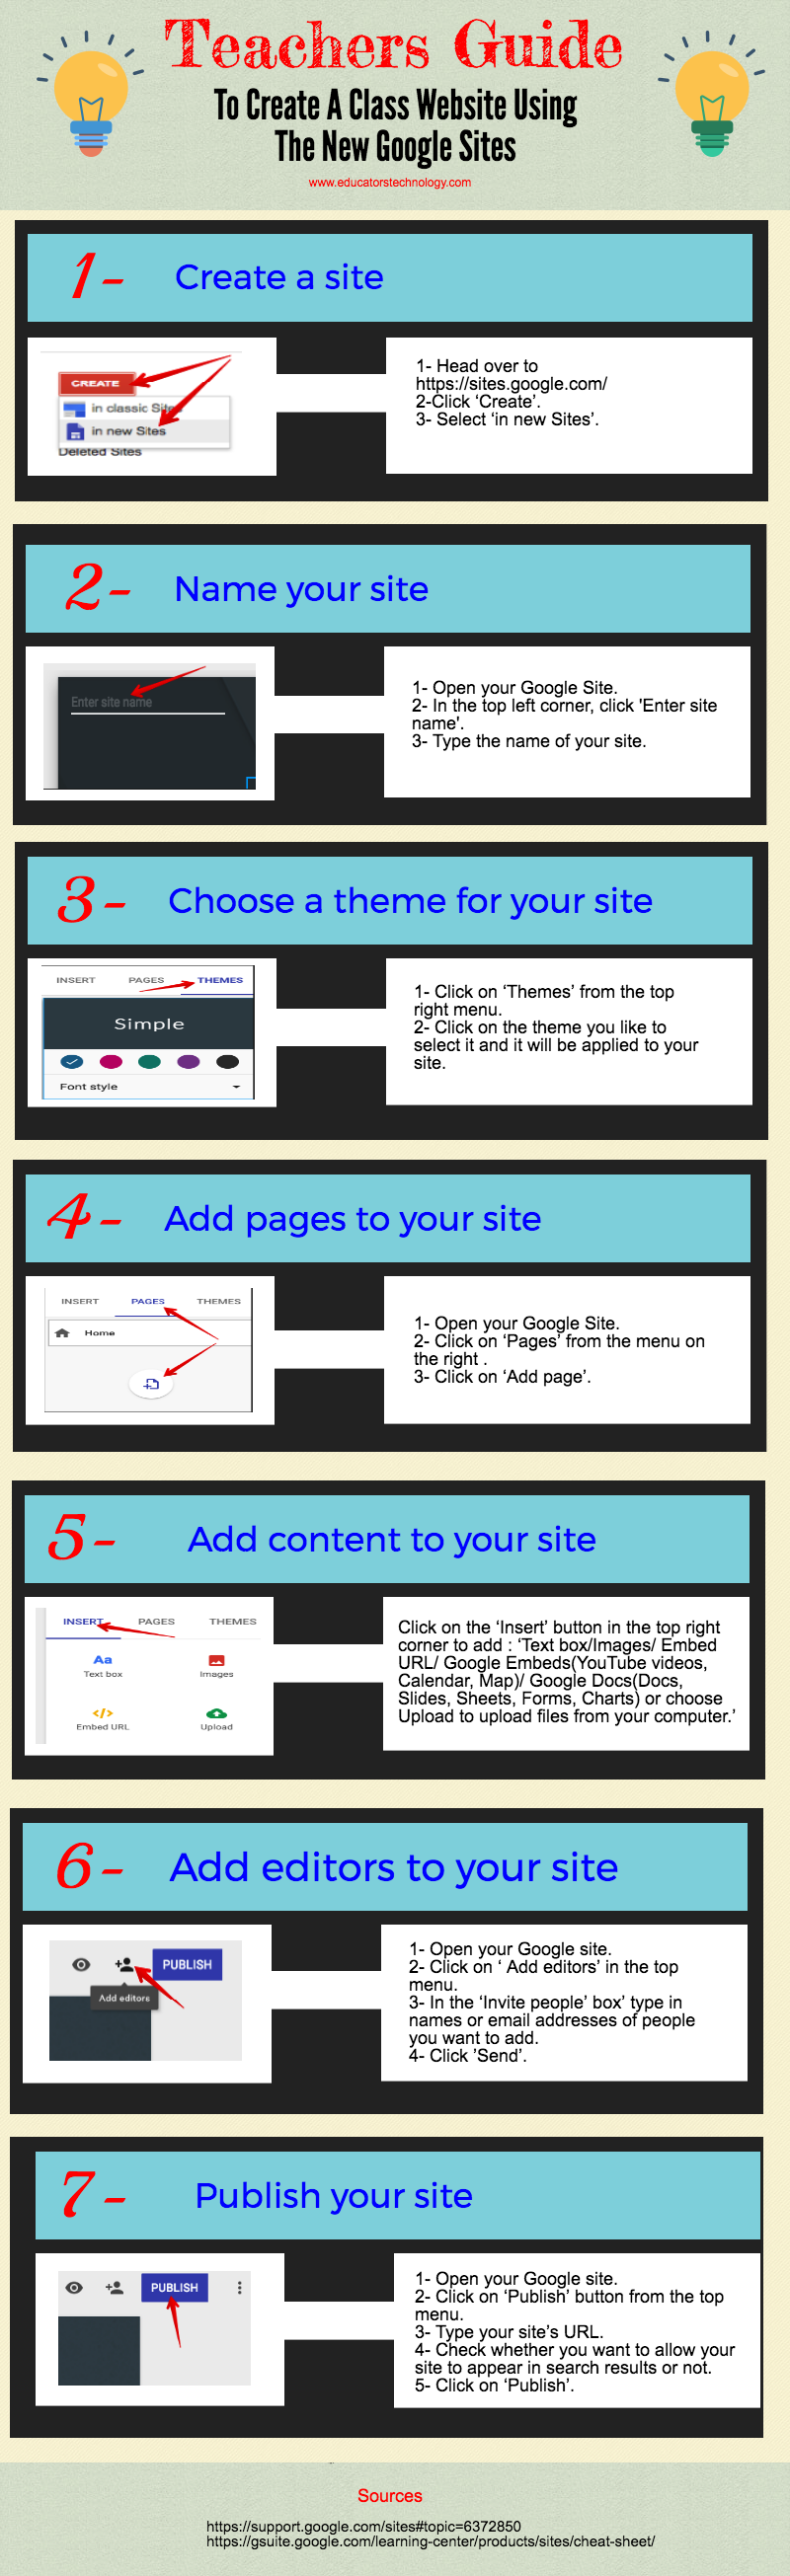 Teachers Guide to Creating A Class Website Using The New Google Sites